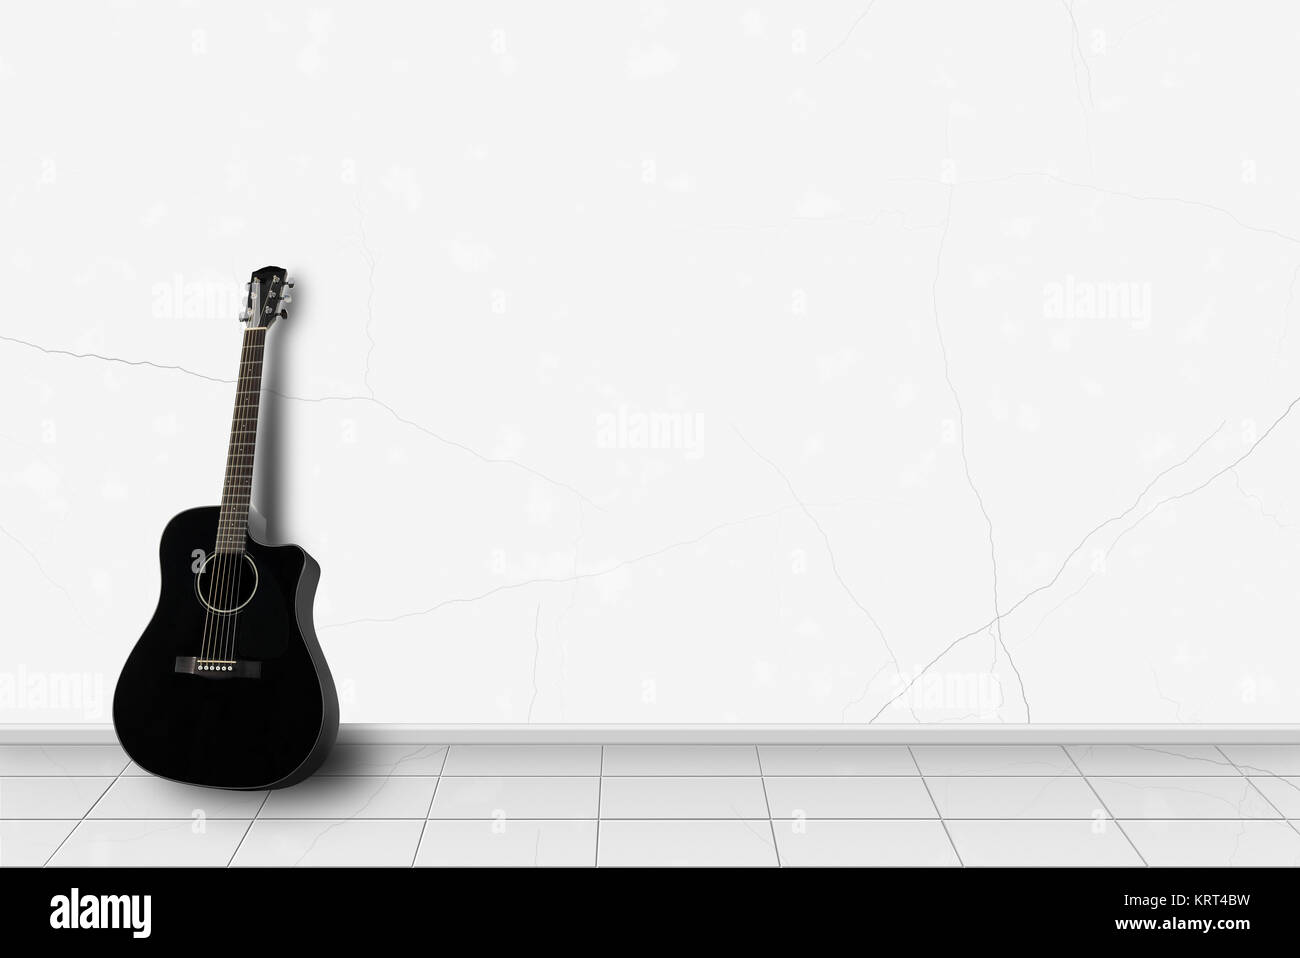 Home Interior Black Acoustic Guitar In Front On A White Wall Stock Photo Alamy